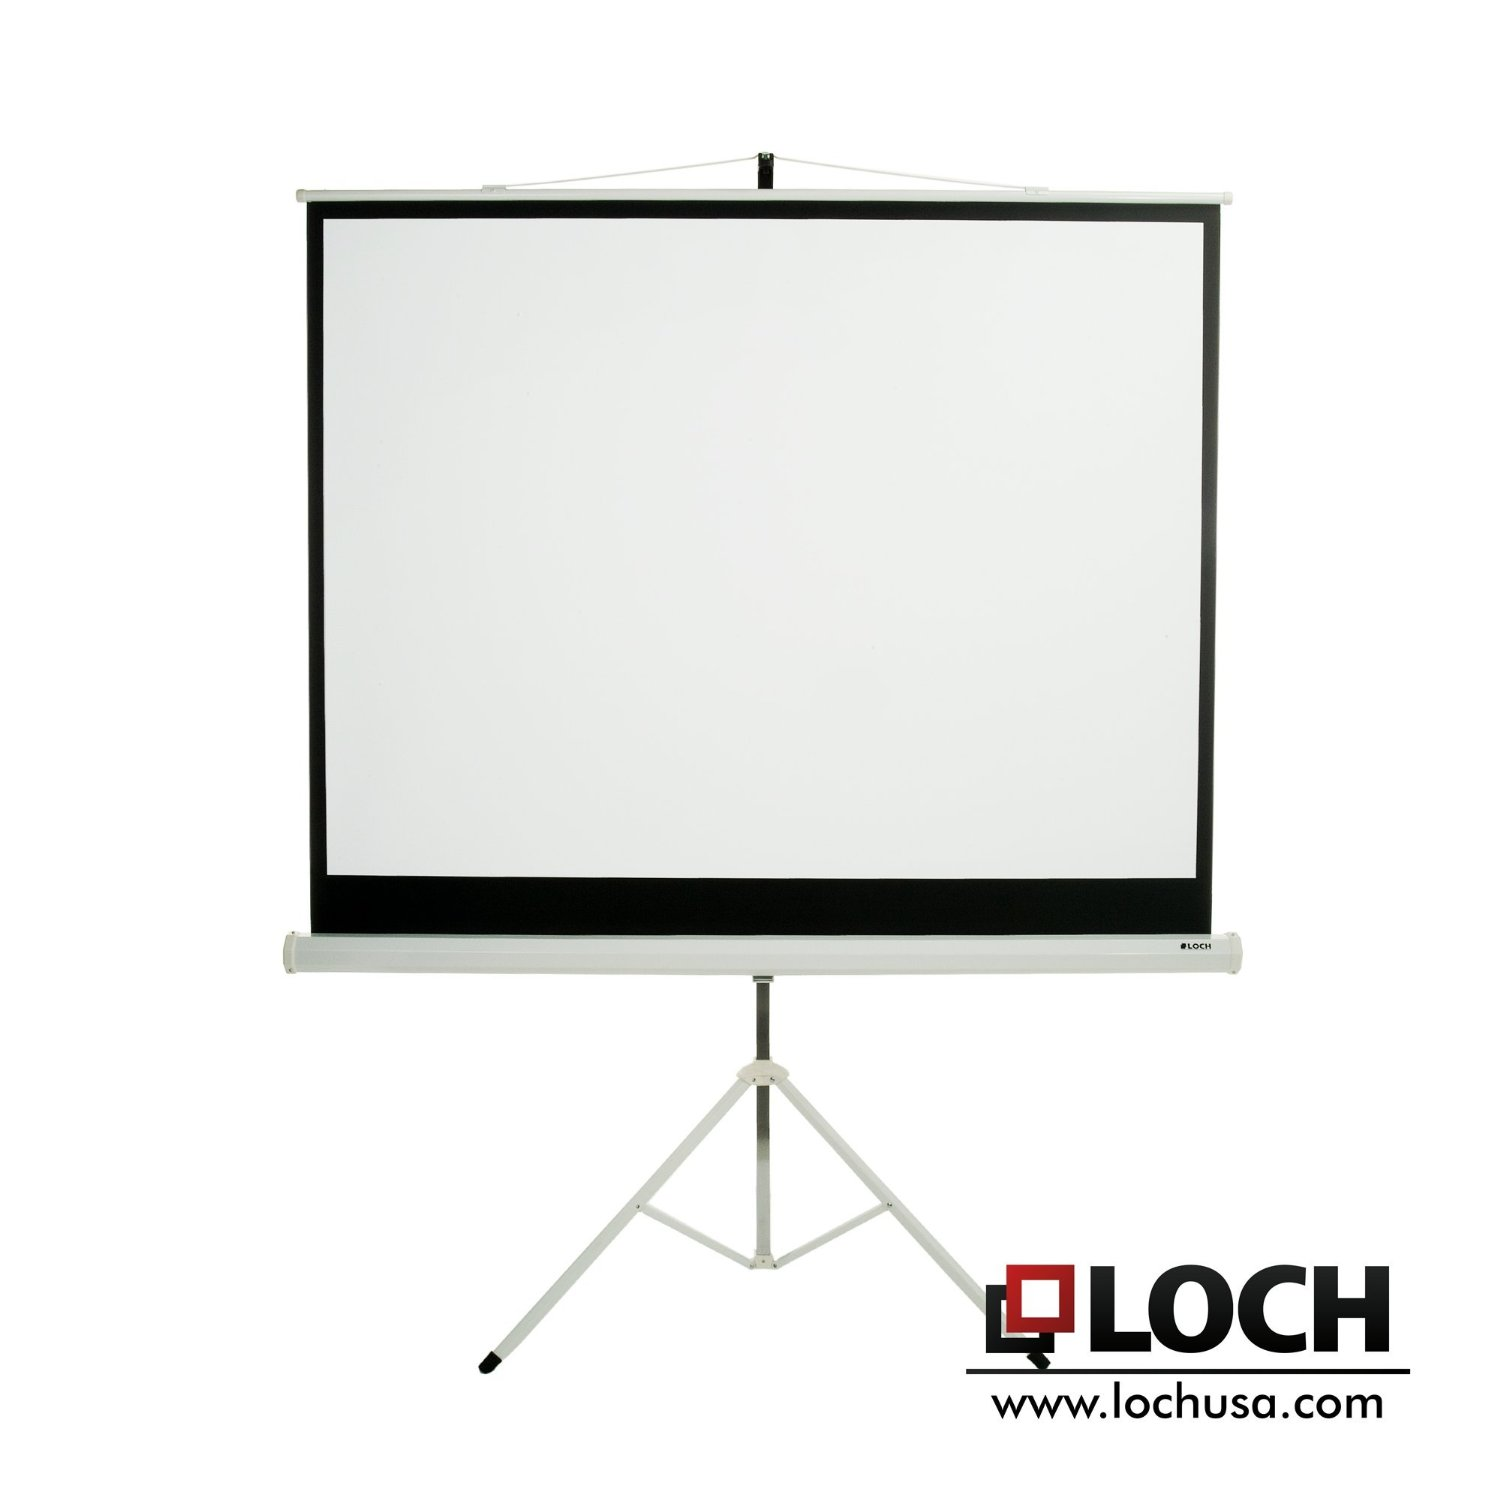 Loch TS 100 Portable Projection Screen